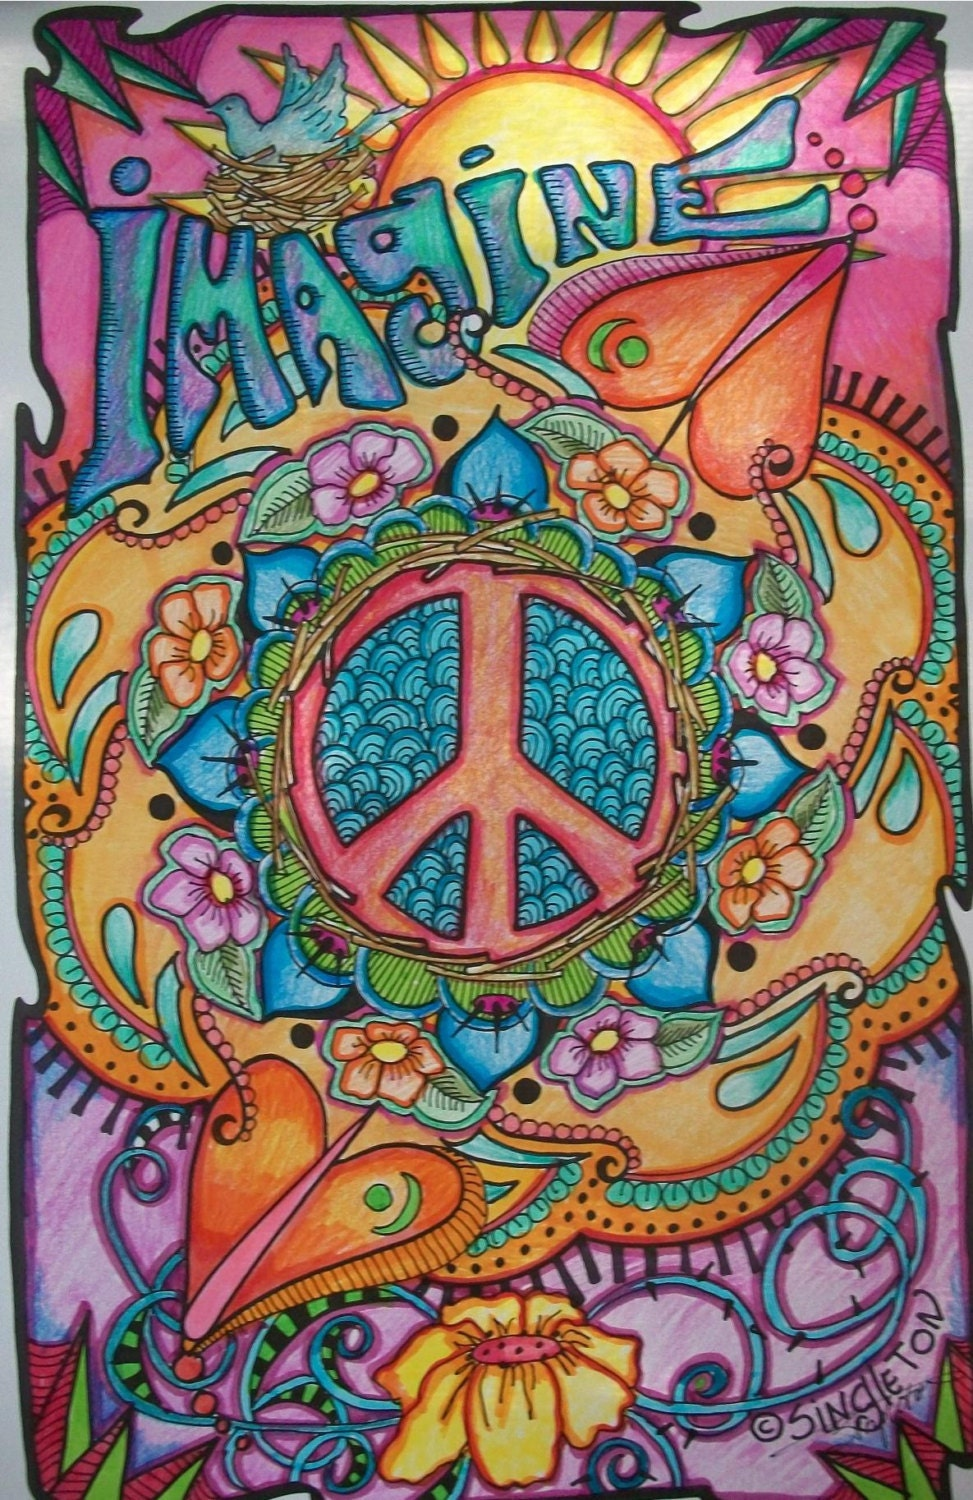 Imagine Peace and Love Singleton Hippie Art Poster Fully